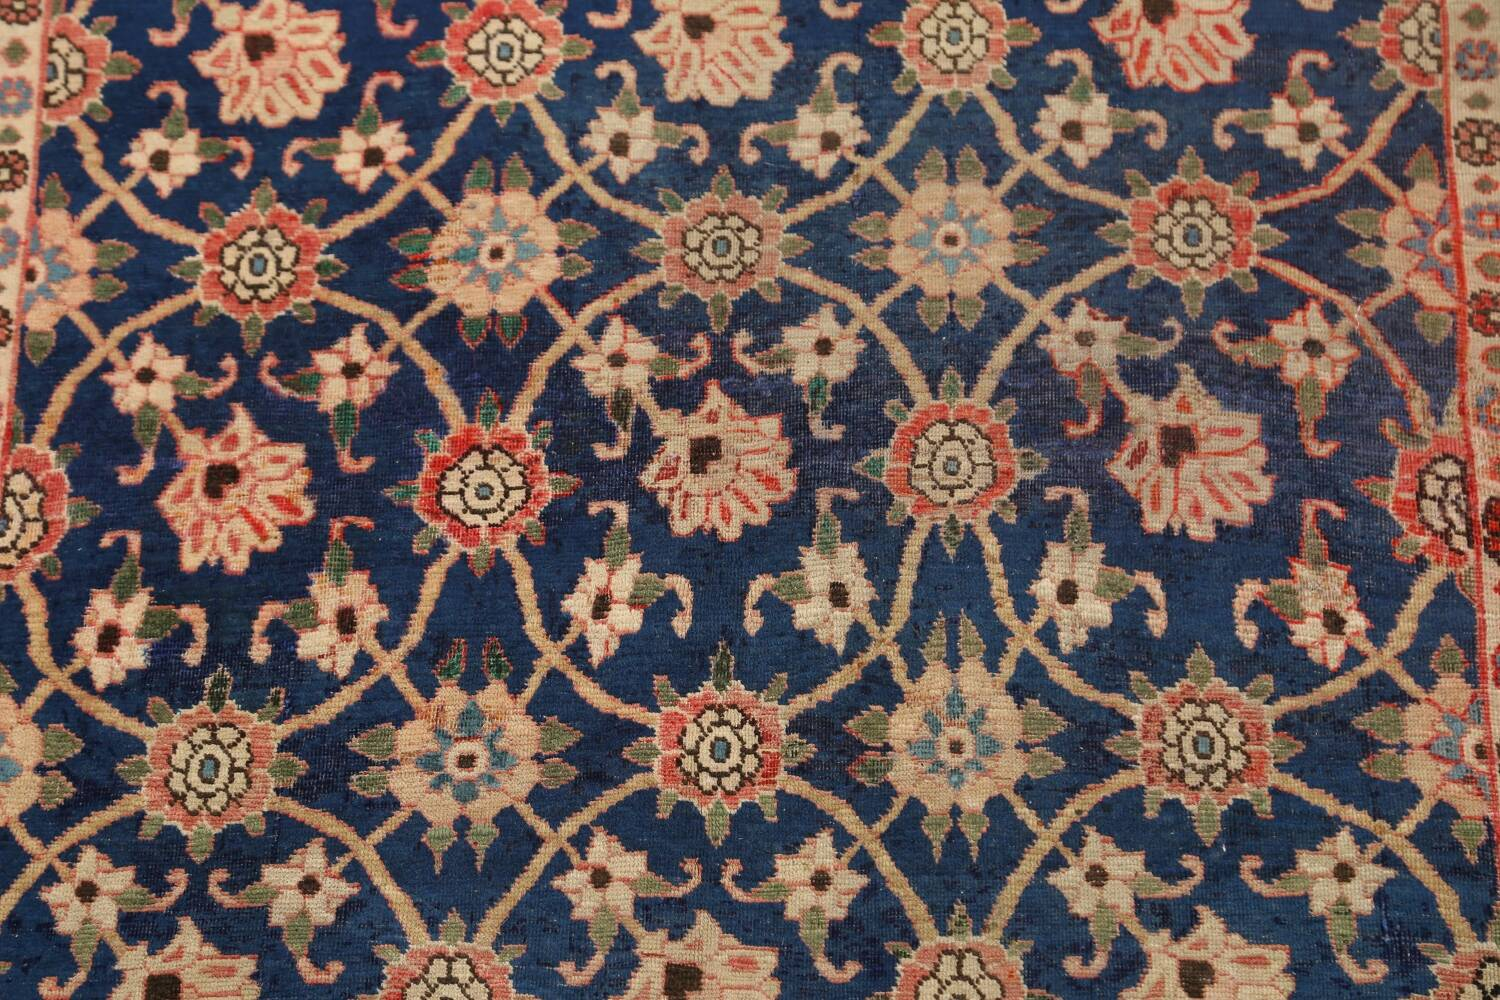 Antique Vegetable Dye Isfahan Persian Area Rug 3x5 image 4